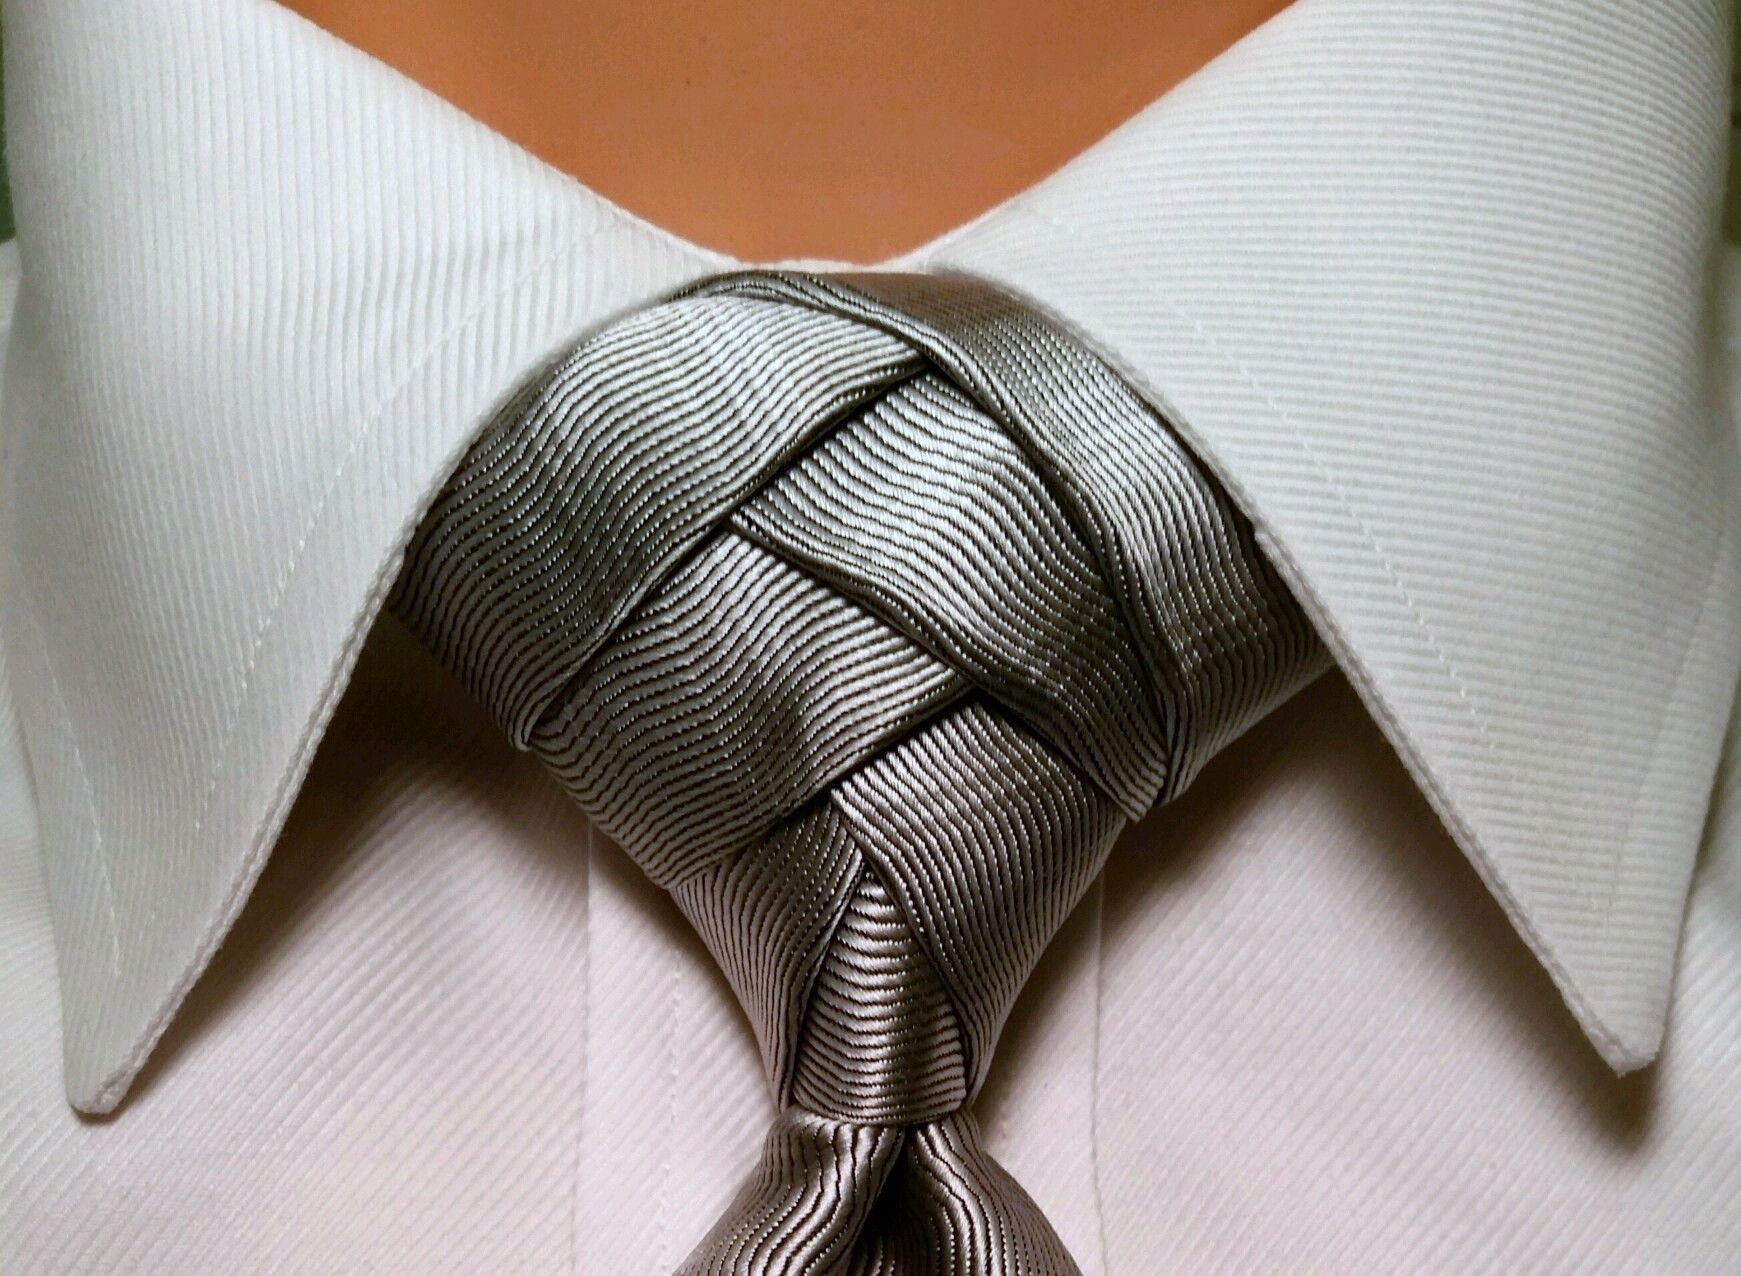 Trinity Knot Diagram Done It Before But Forget How At Times One Of